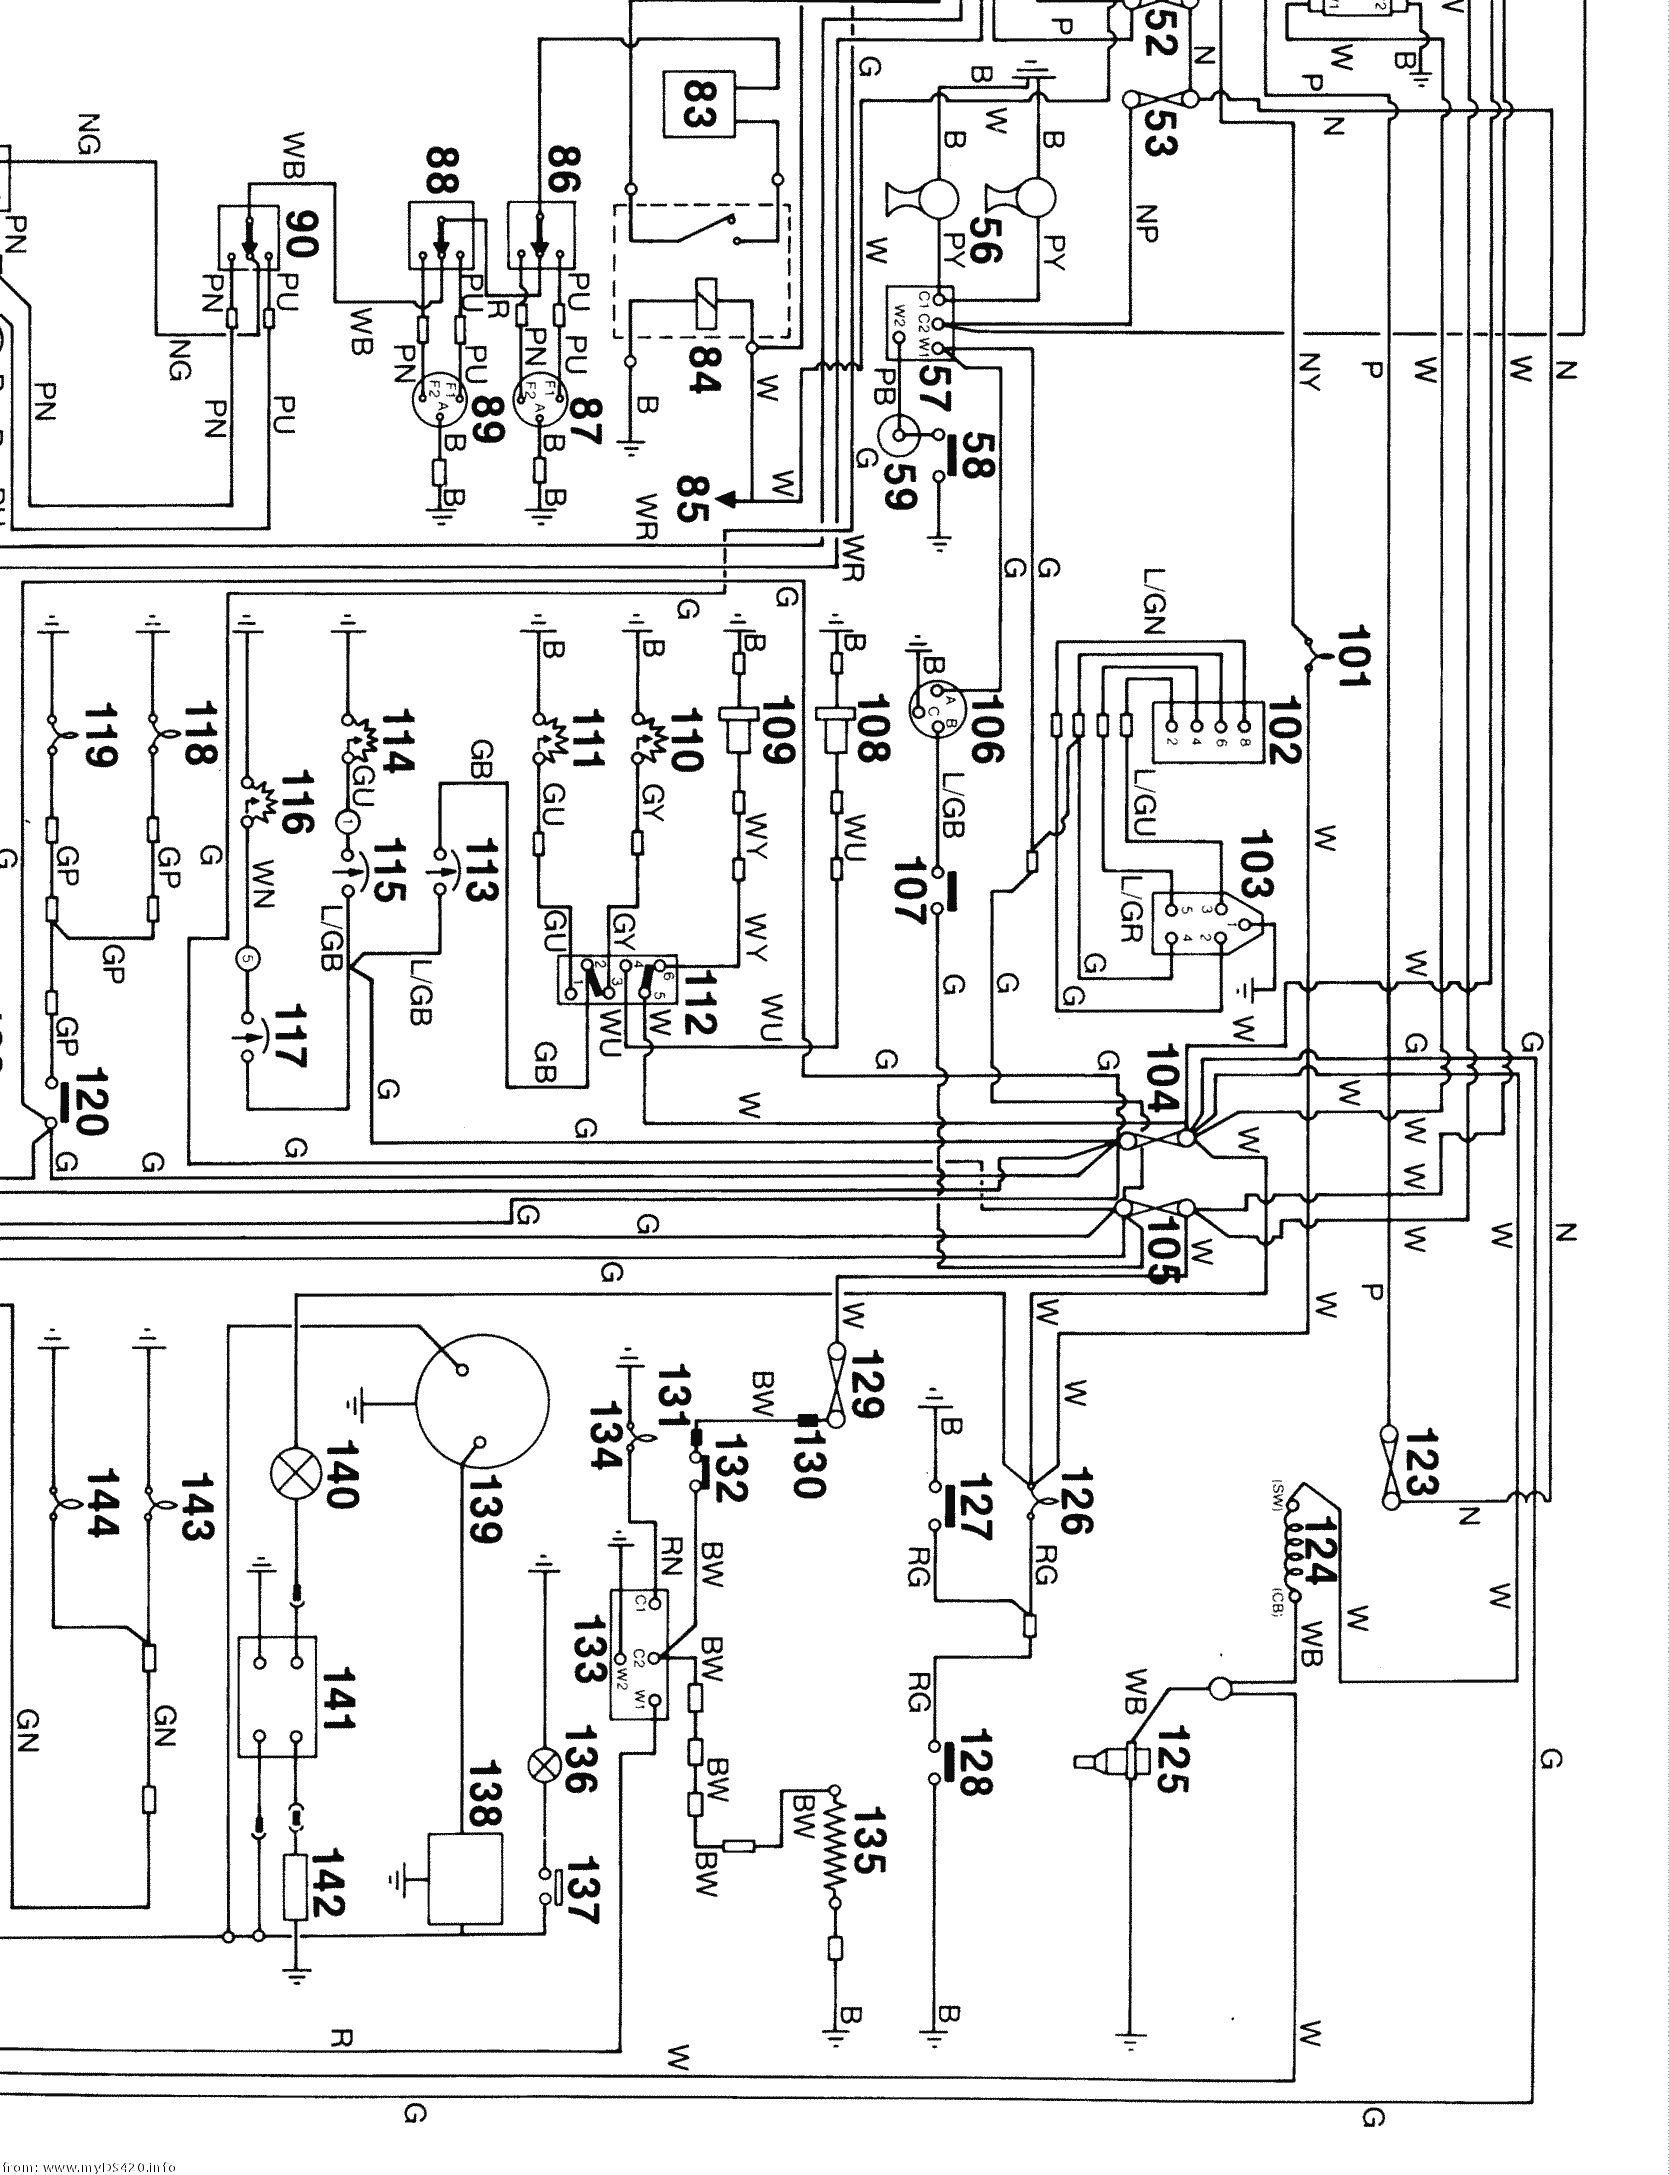 yfz 450 wiring diagram yfz 450 screw wiring diagram